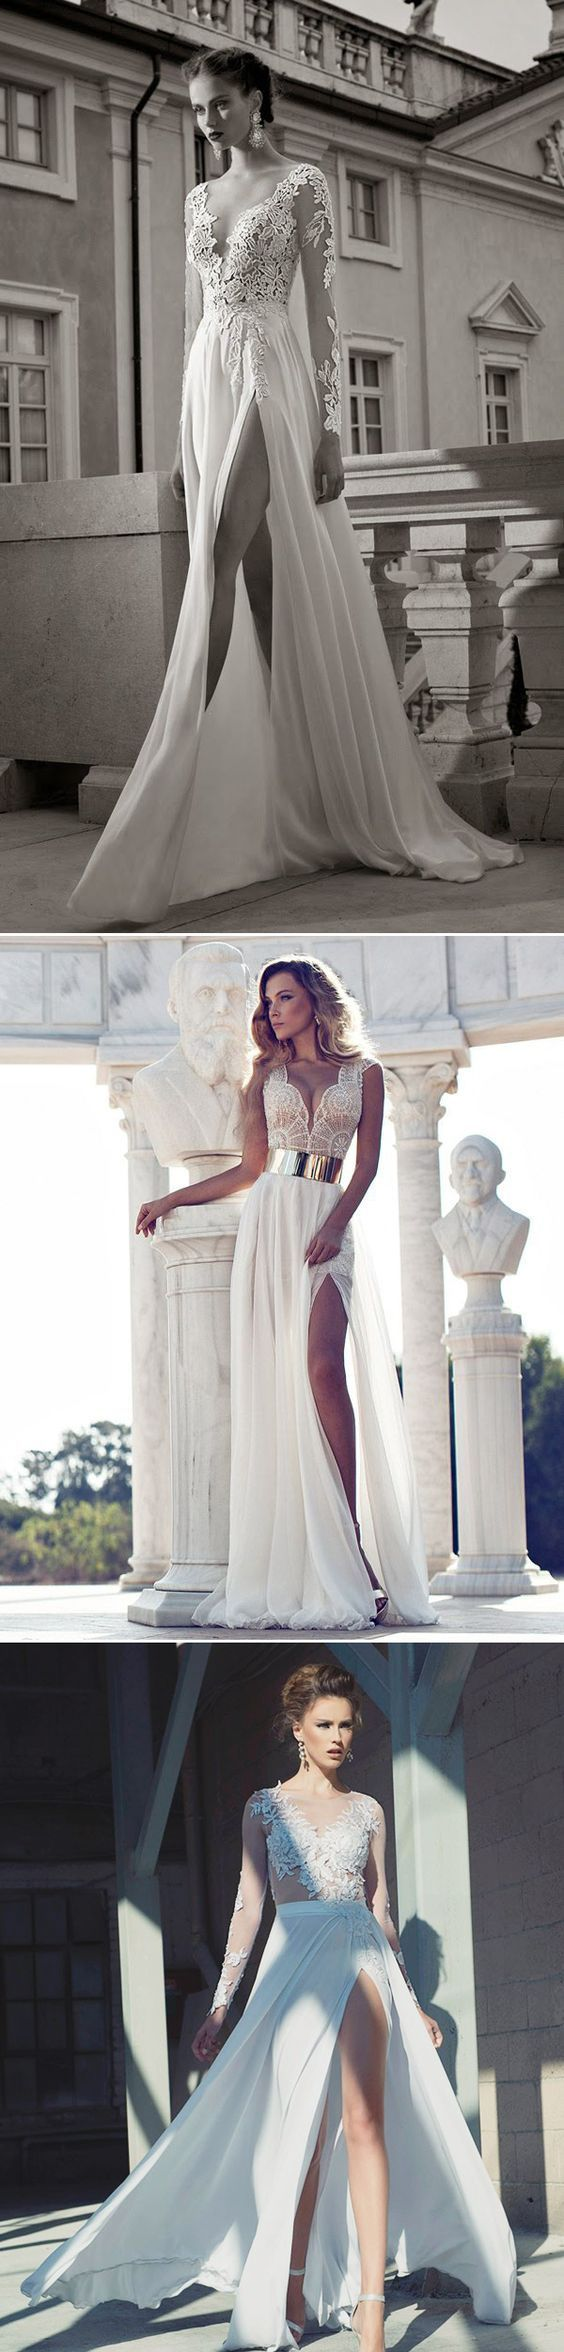 High slits were all the rage on the latest bridal runways, and we can see why! A high leg slit design is perfect for modern brides who want…